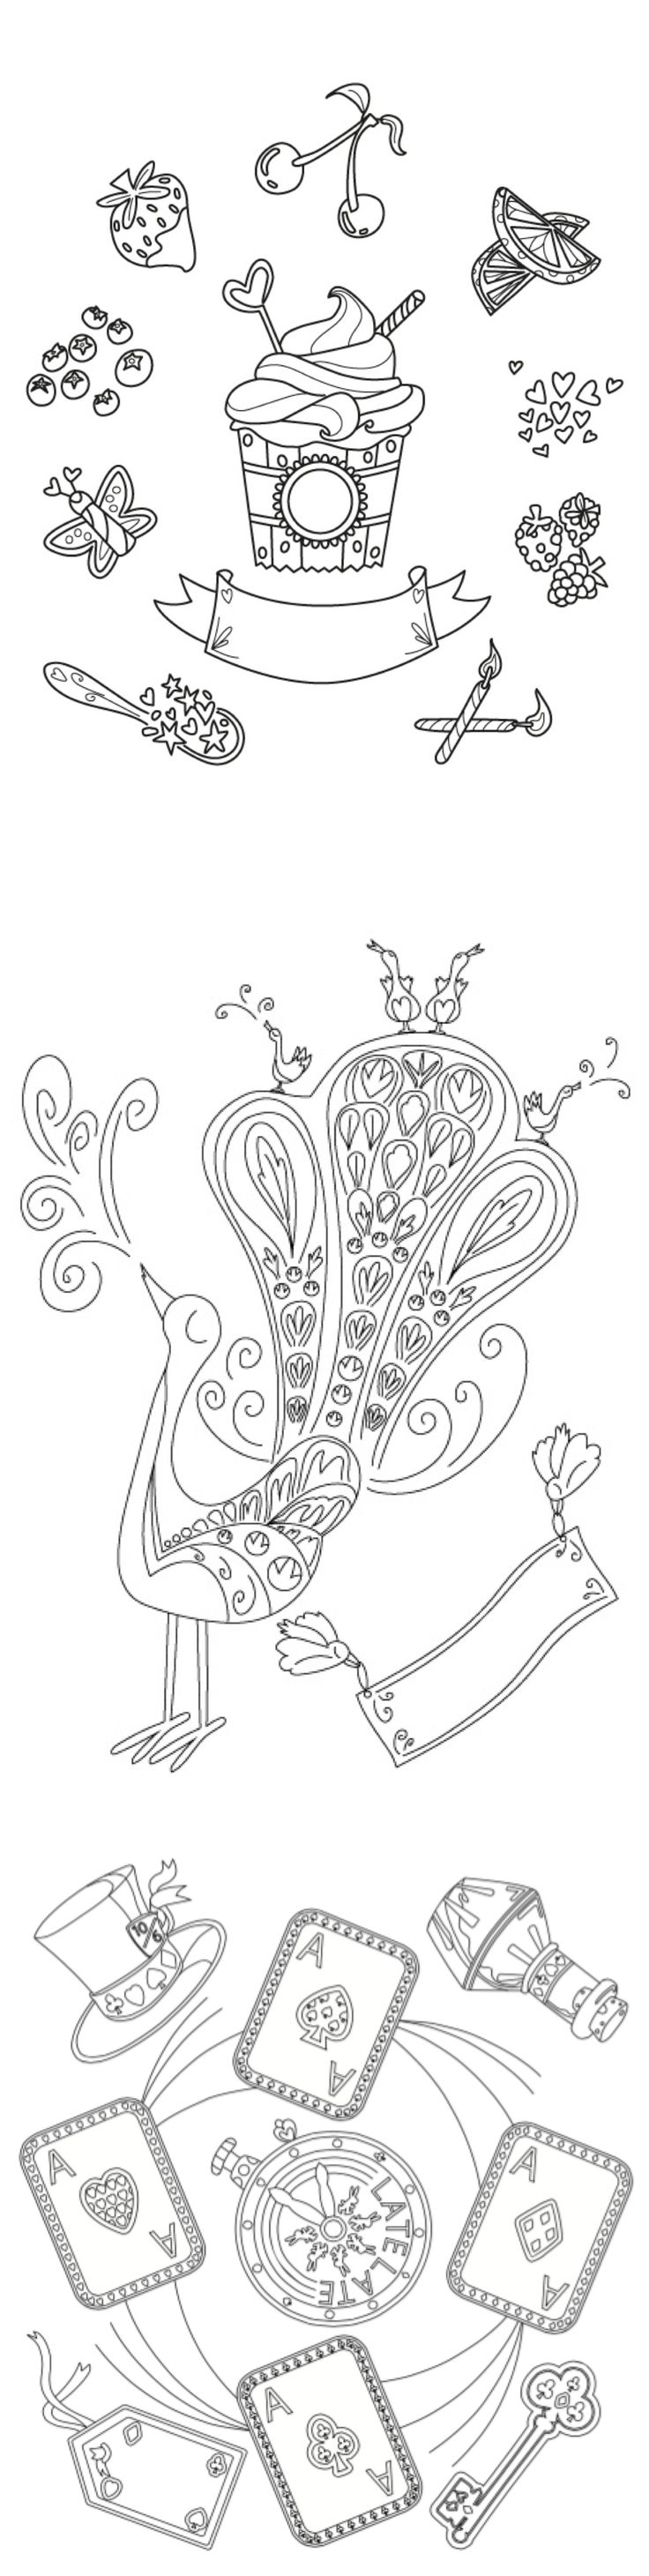 55 best free coloring pages images on pinterest coloring books